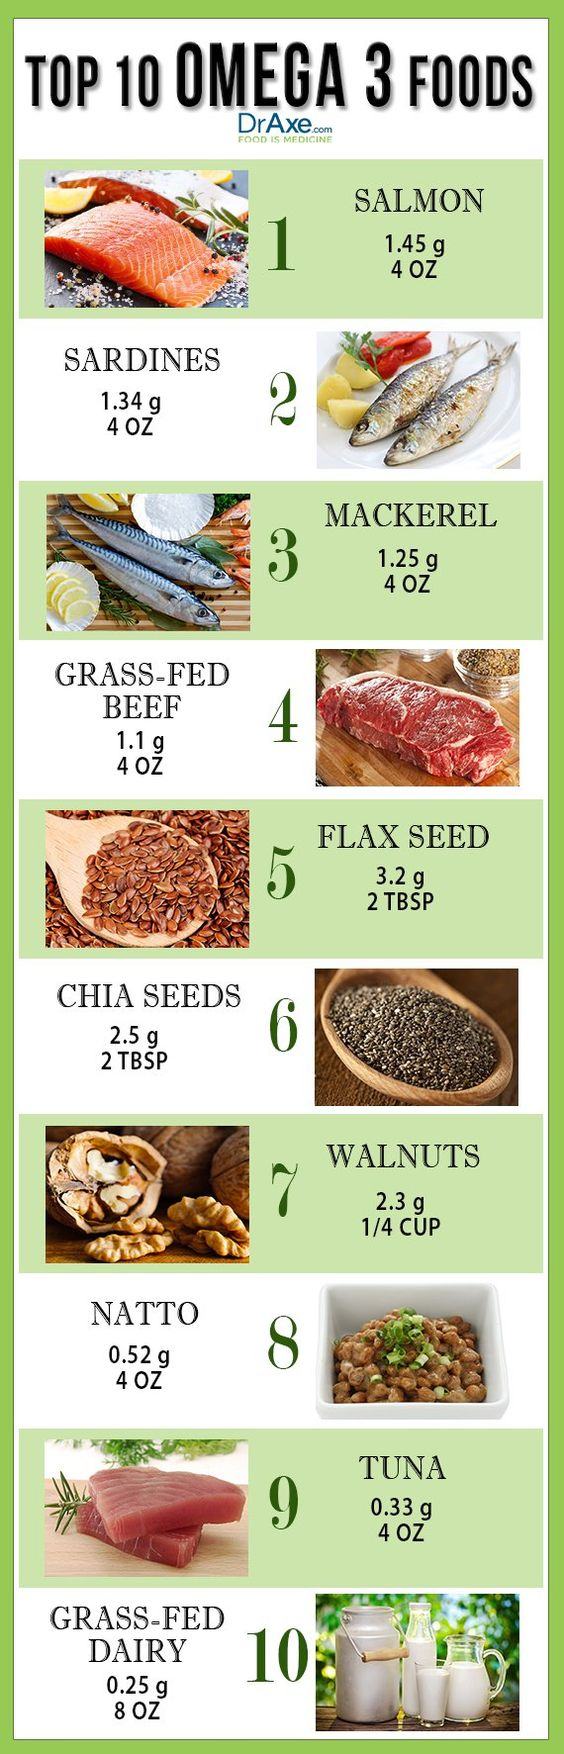 Omega 3 Benefits Plus Top 10 Omega 3 Foods List - DrAxe: